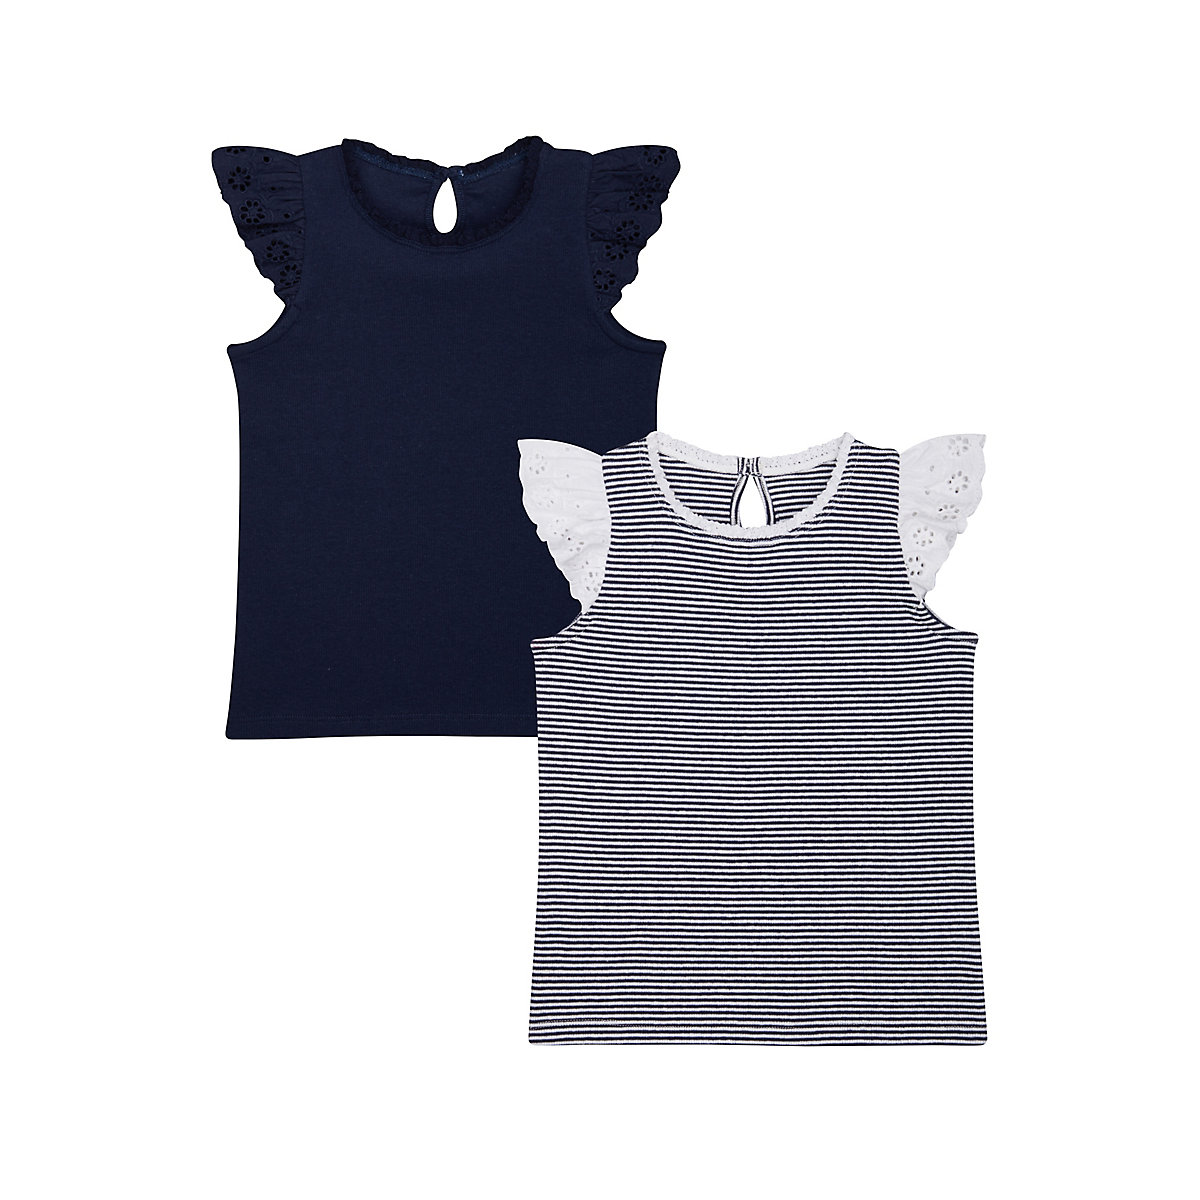 striped and navy frill vest t-shirts � 2 pack